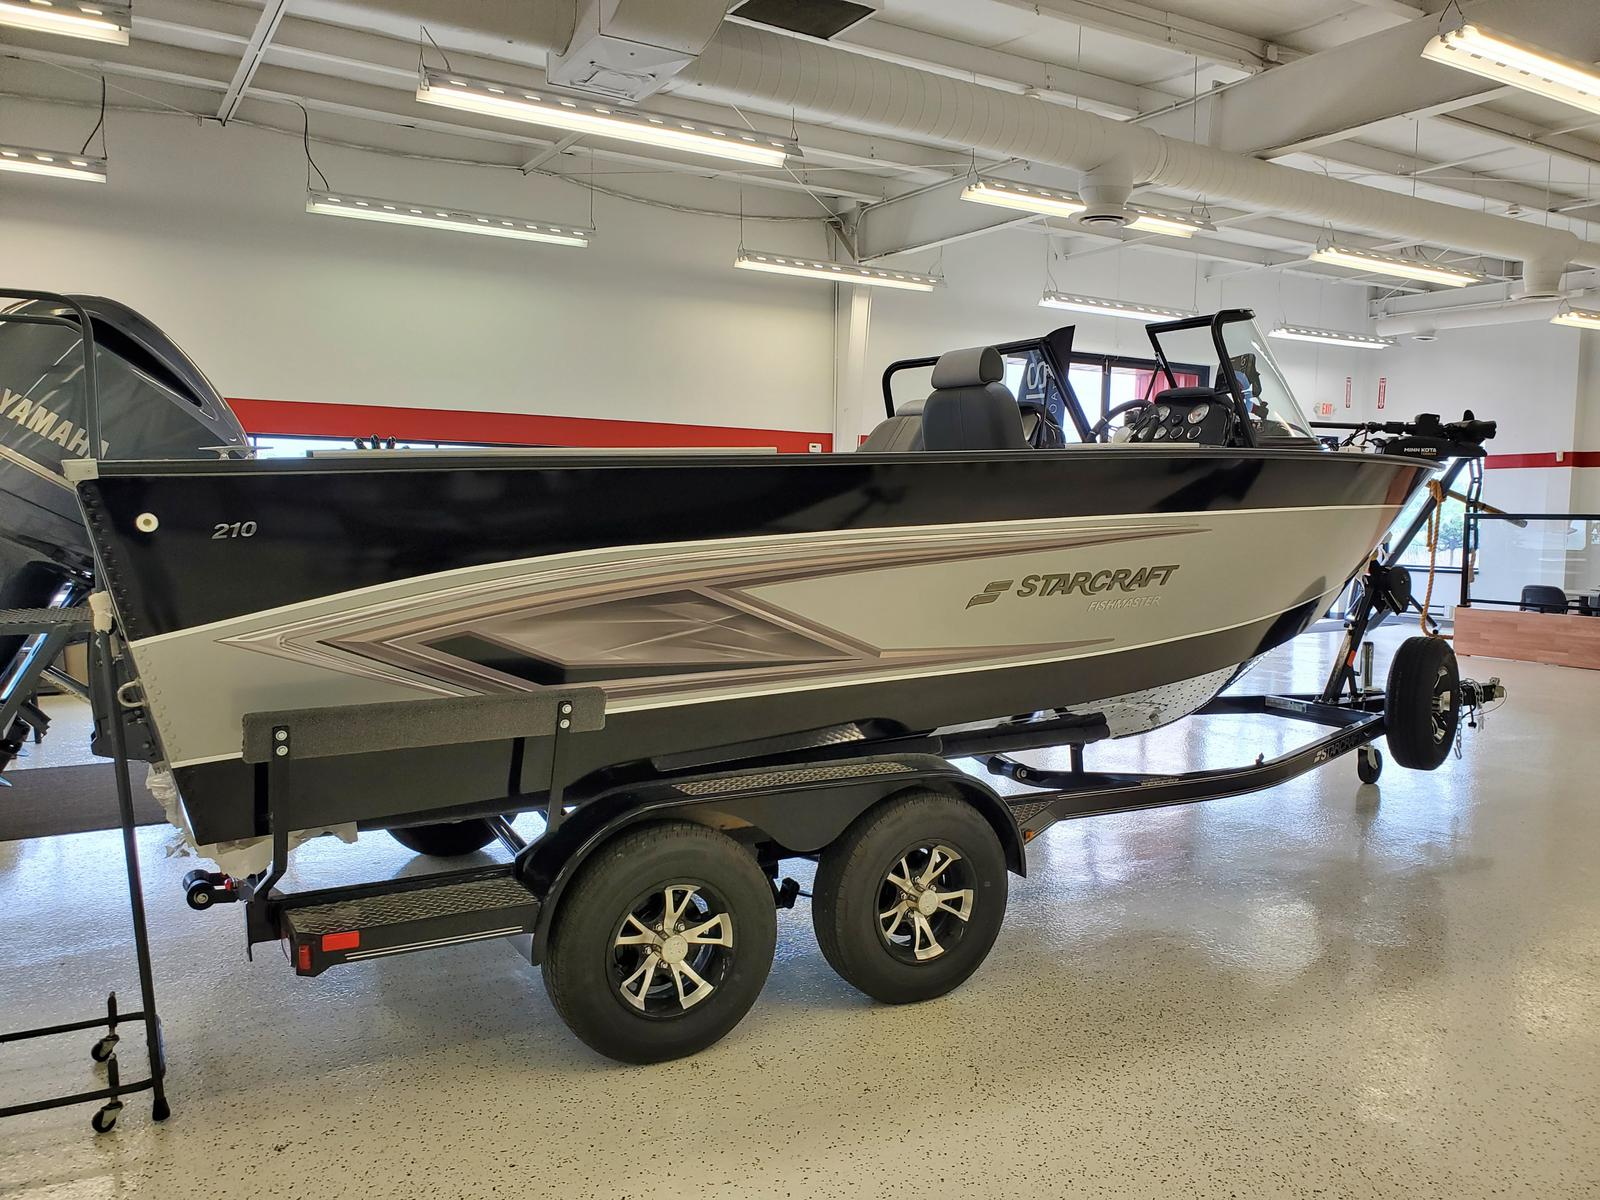 2021 Starcraft boat for sale, model of the boat is Fishmaster 210 & Image # 2 of 19